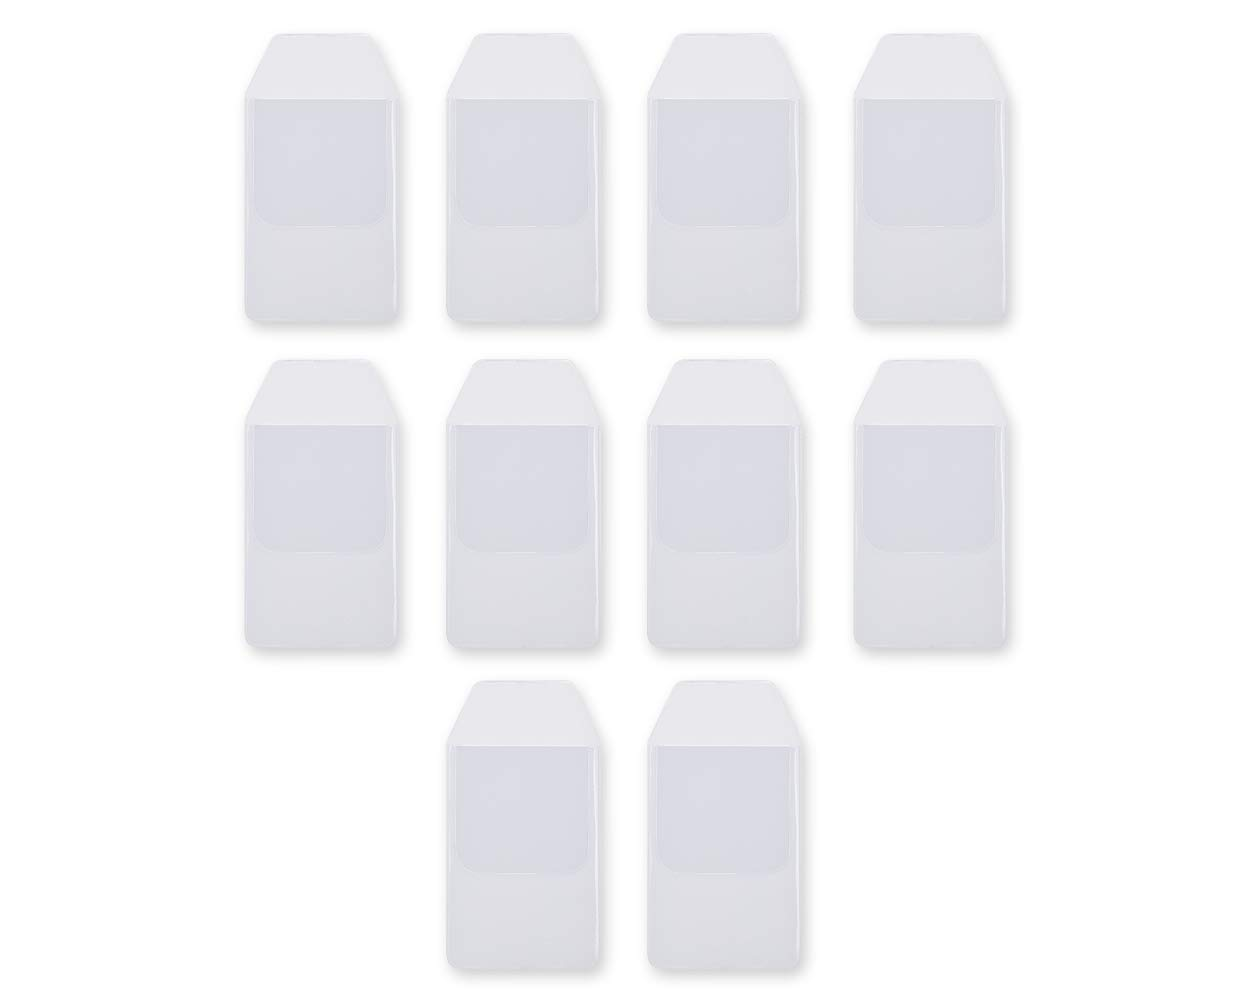 Ace Select Shirt Pocket Protector 10 Pieces Clear PVC Heavy Duty Pocket Protectors for School Hospital Office Supplies by Ace Select (Image #1)